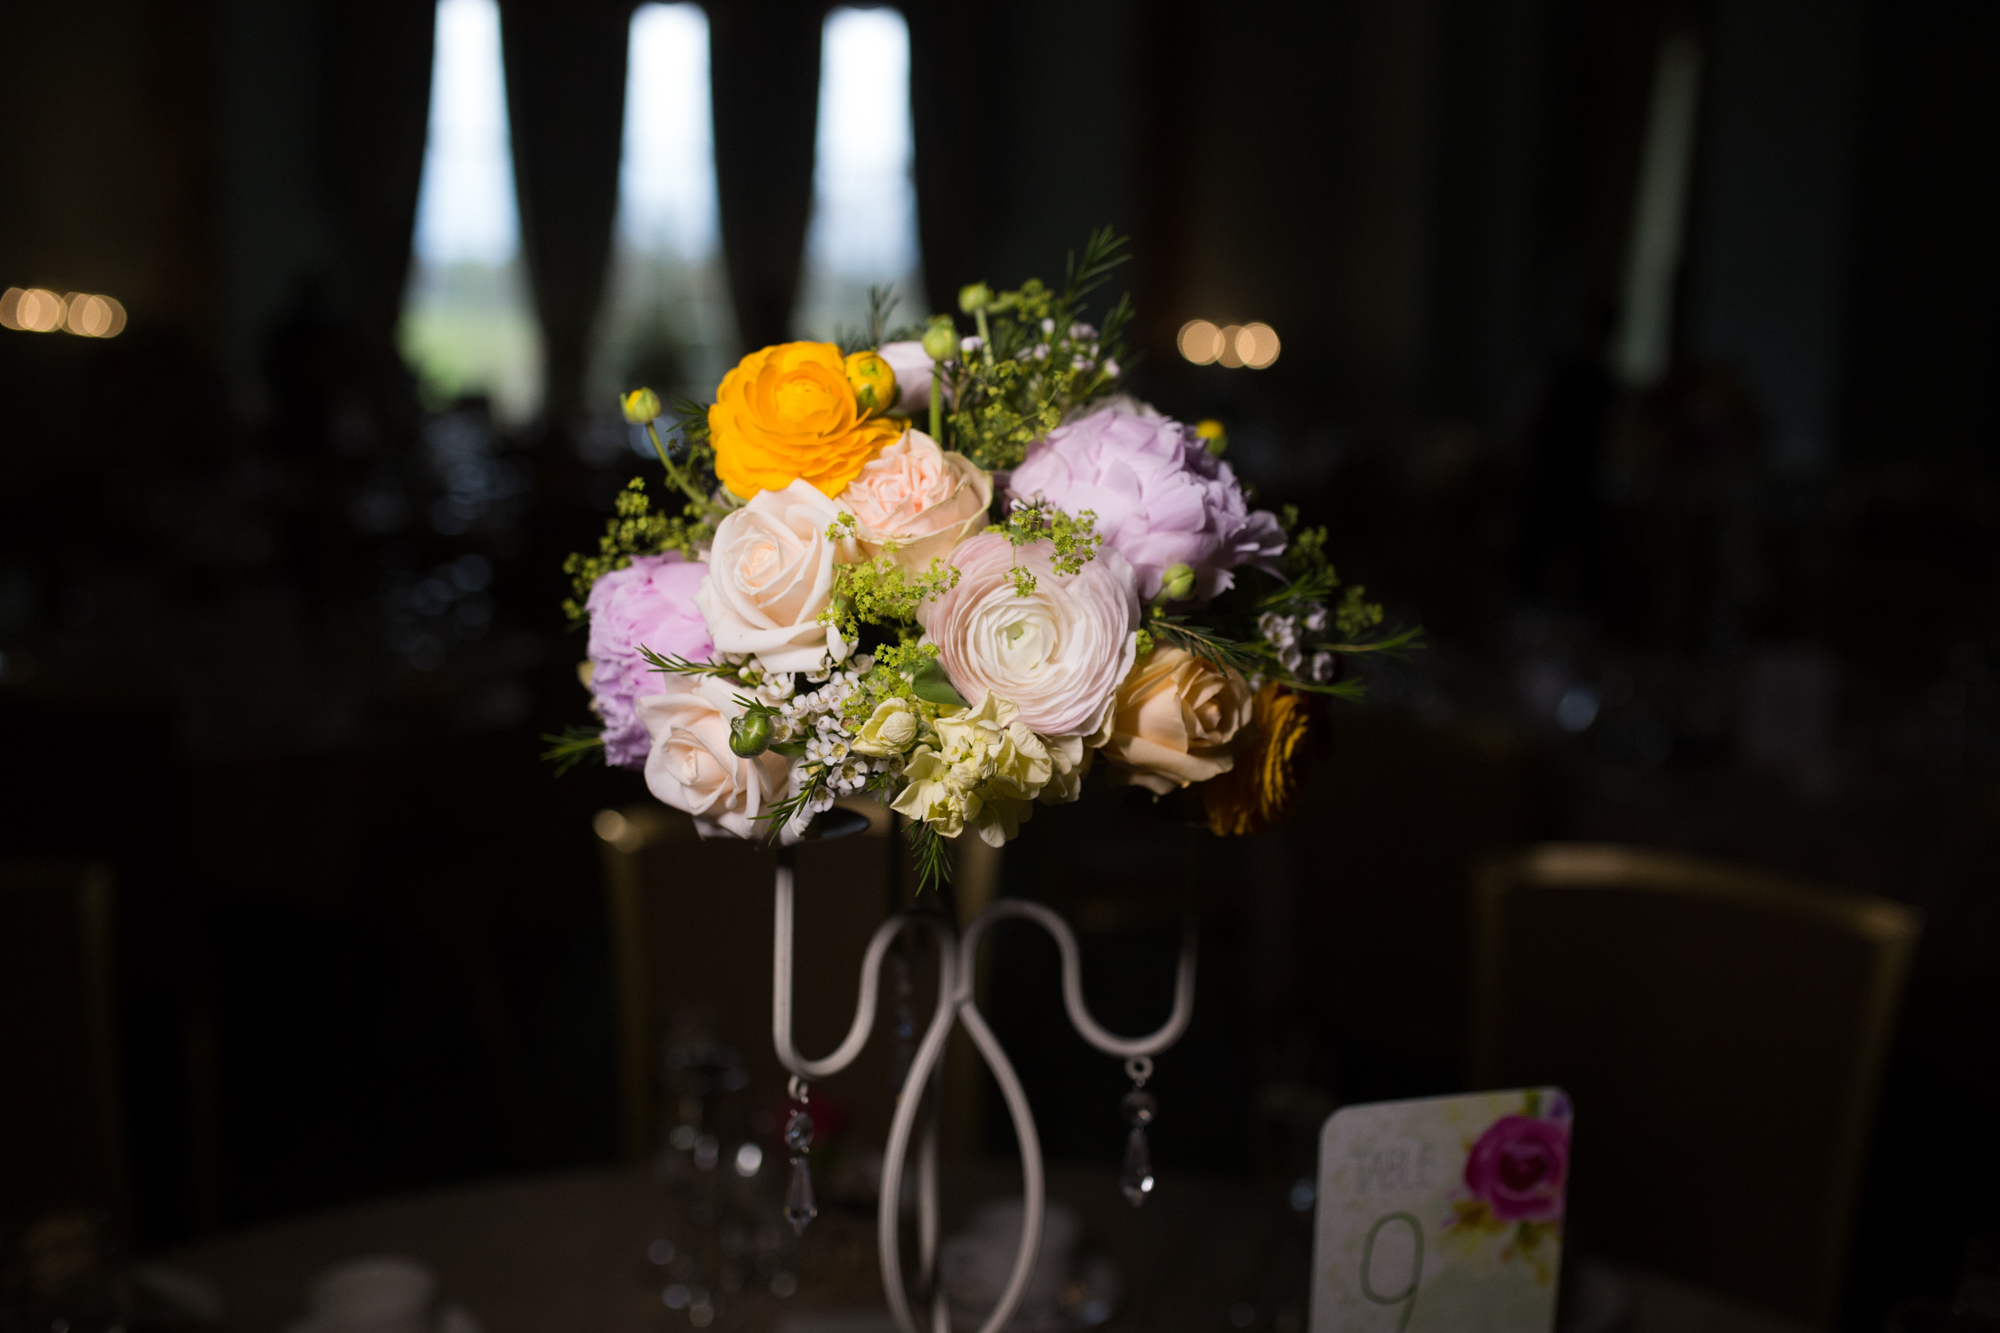 wynyard hall wedding photographer duncan mccall-1033.jpg